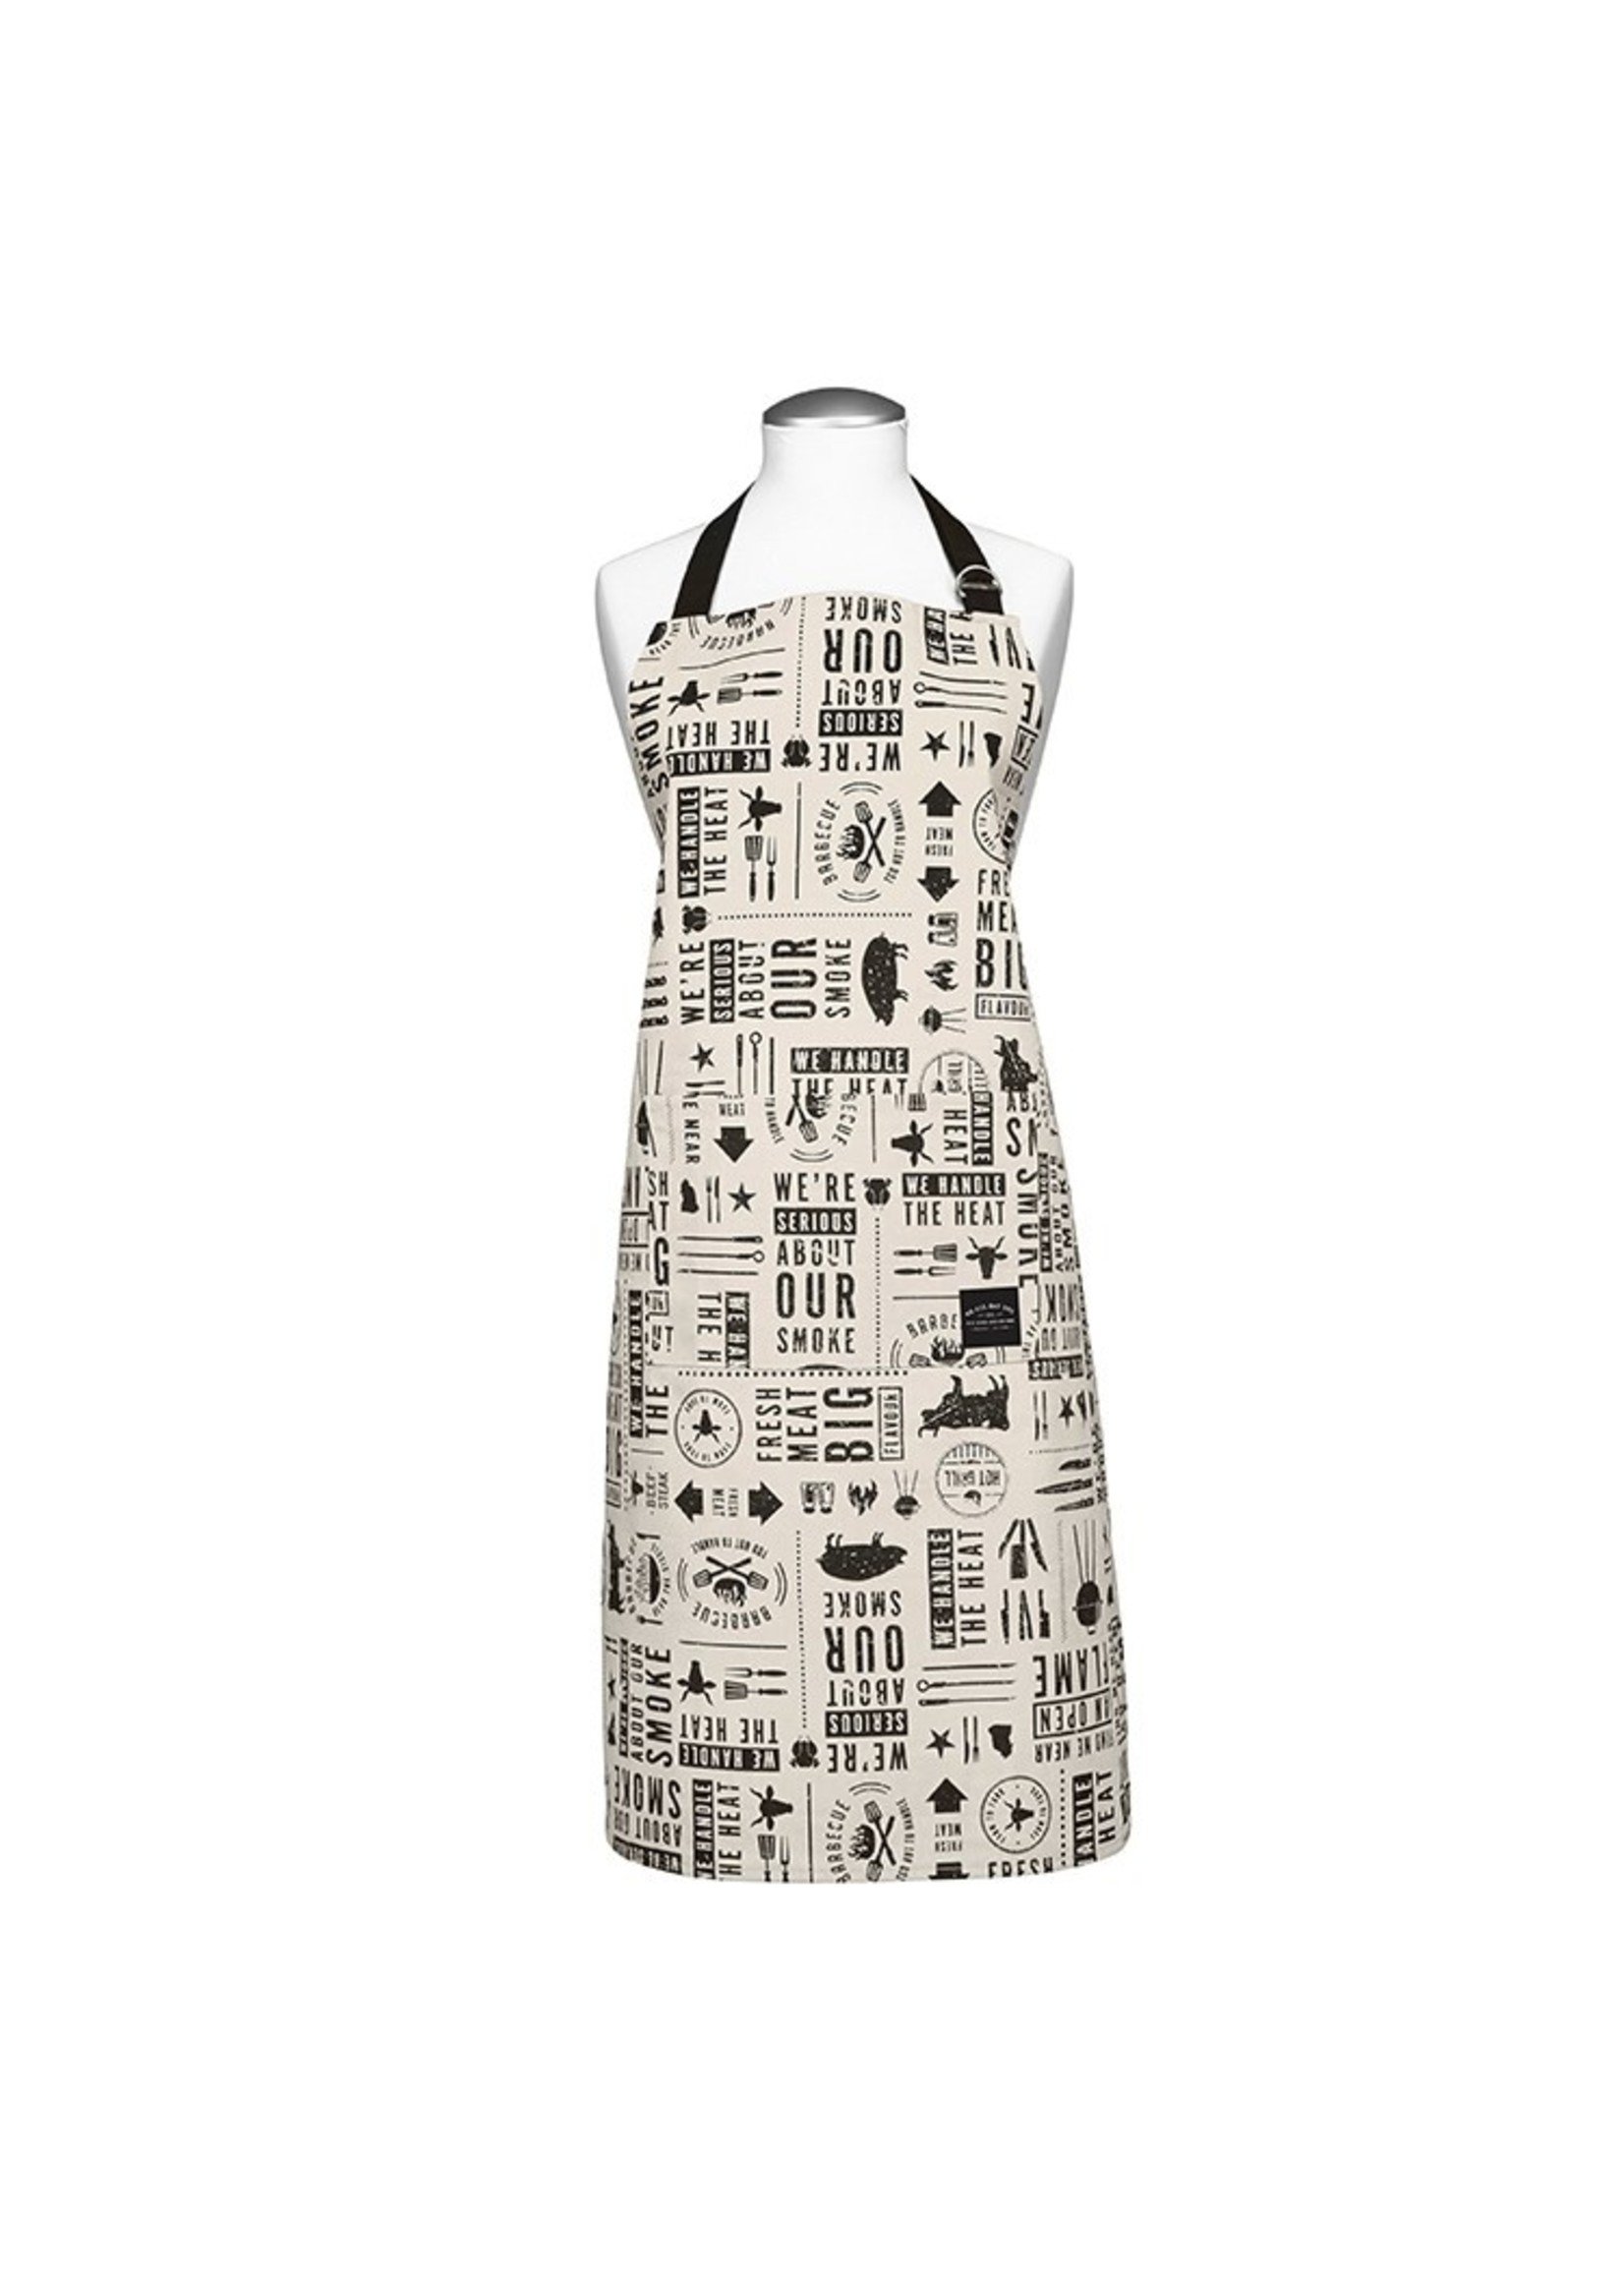 We All Eat BBQ Printed Apron